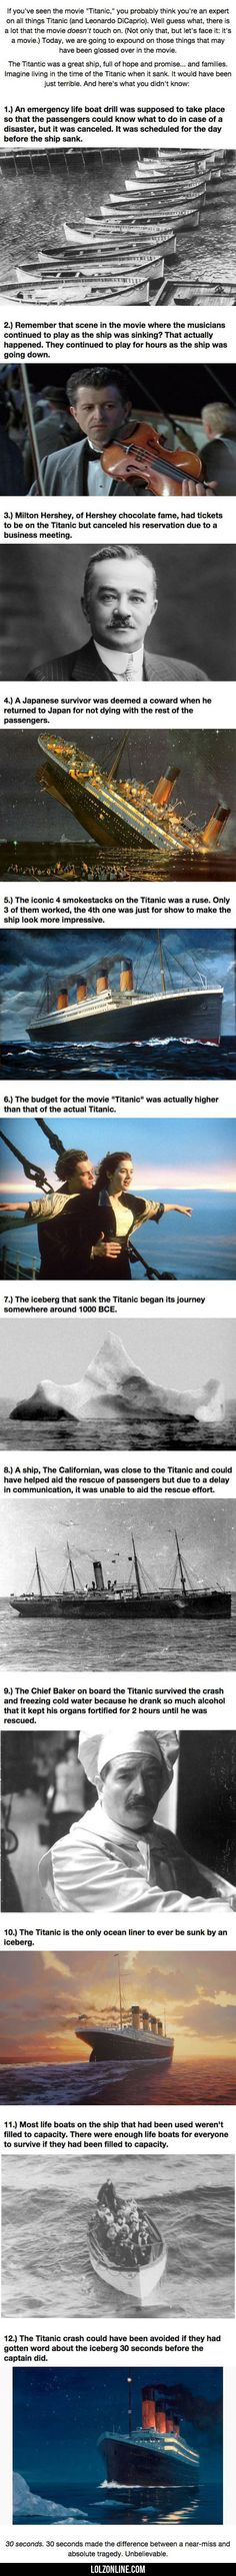 If You've Seen The Movie Titanic, You Probably... #lol #haha #funny